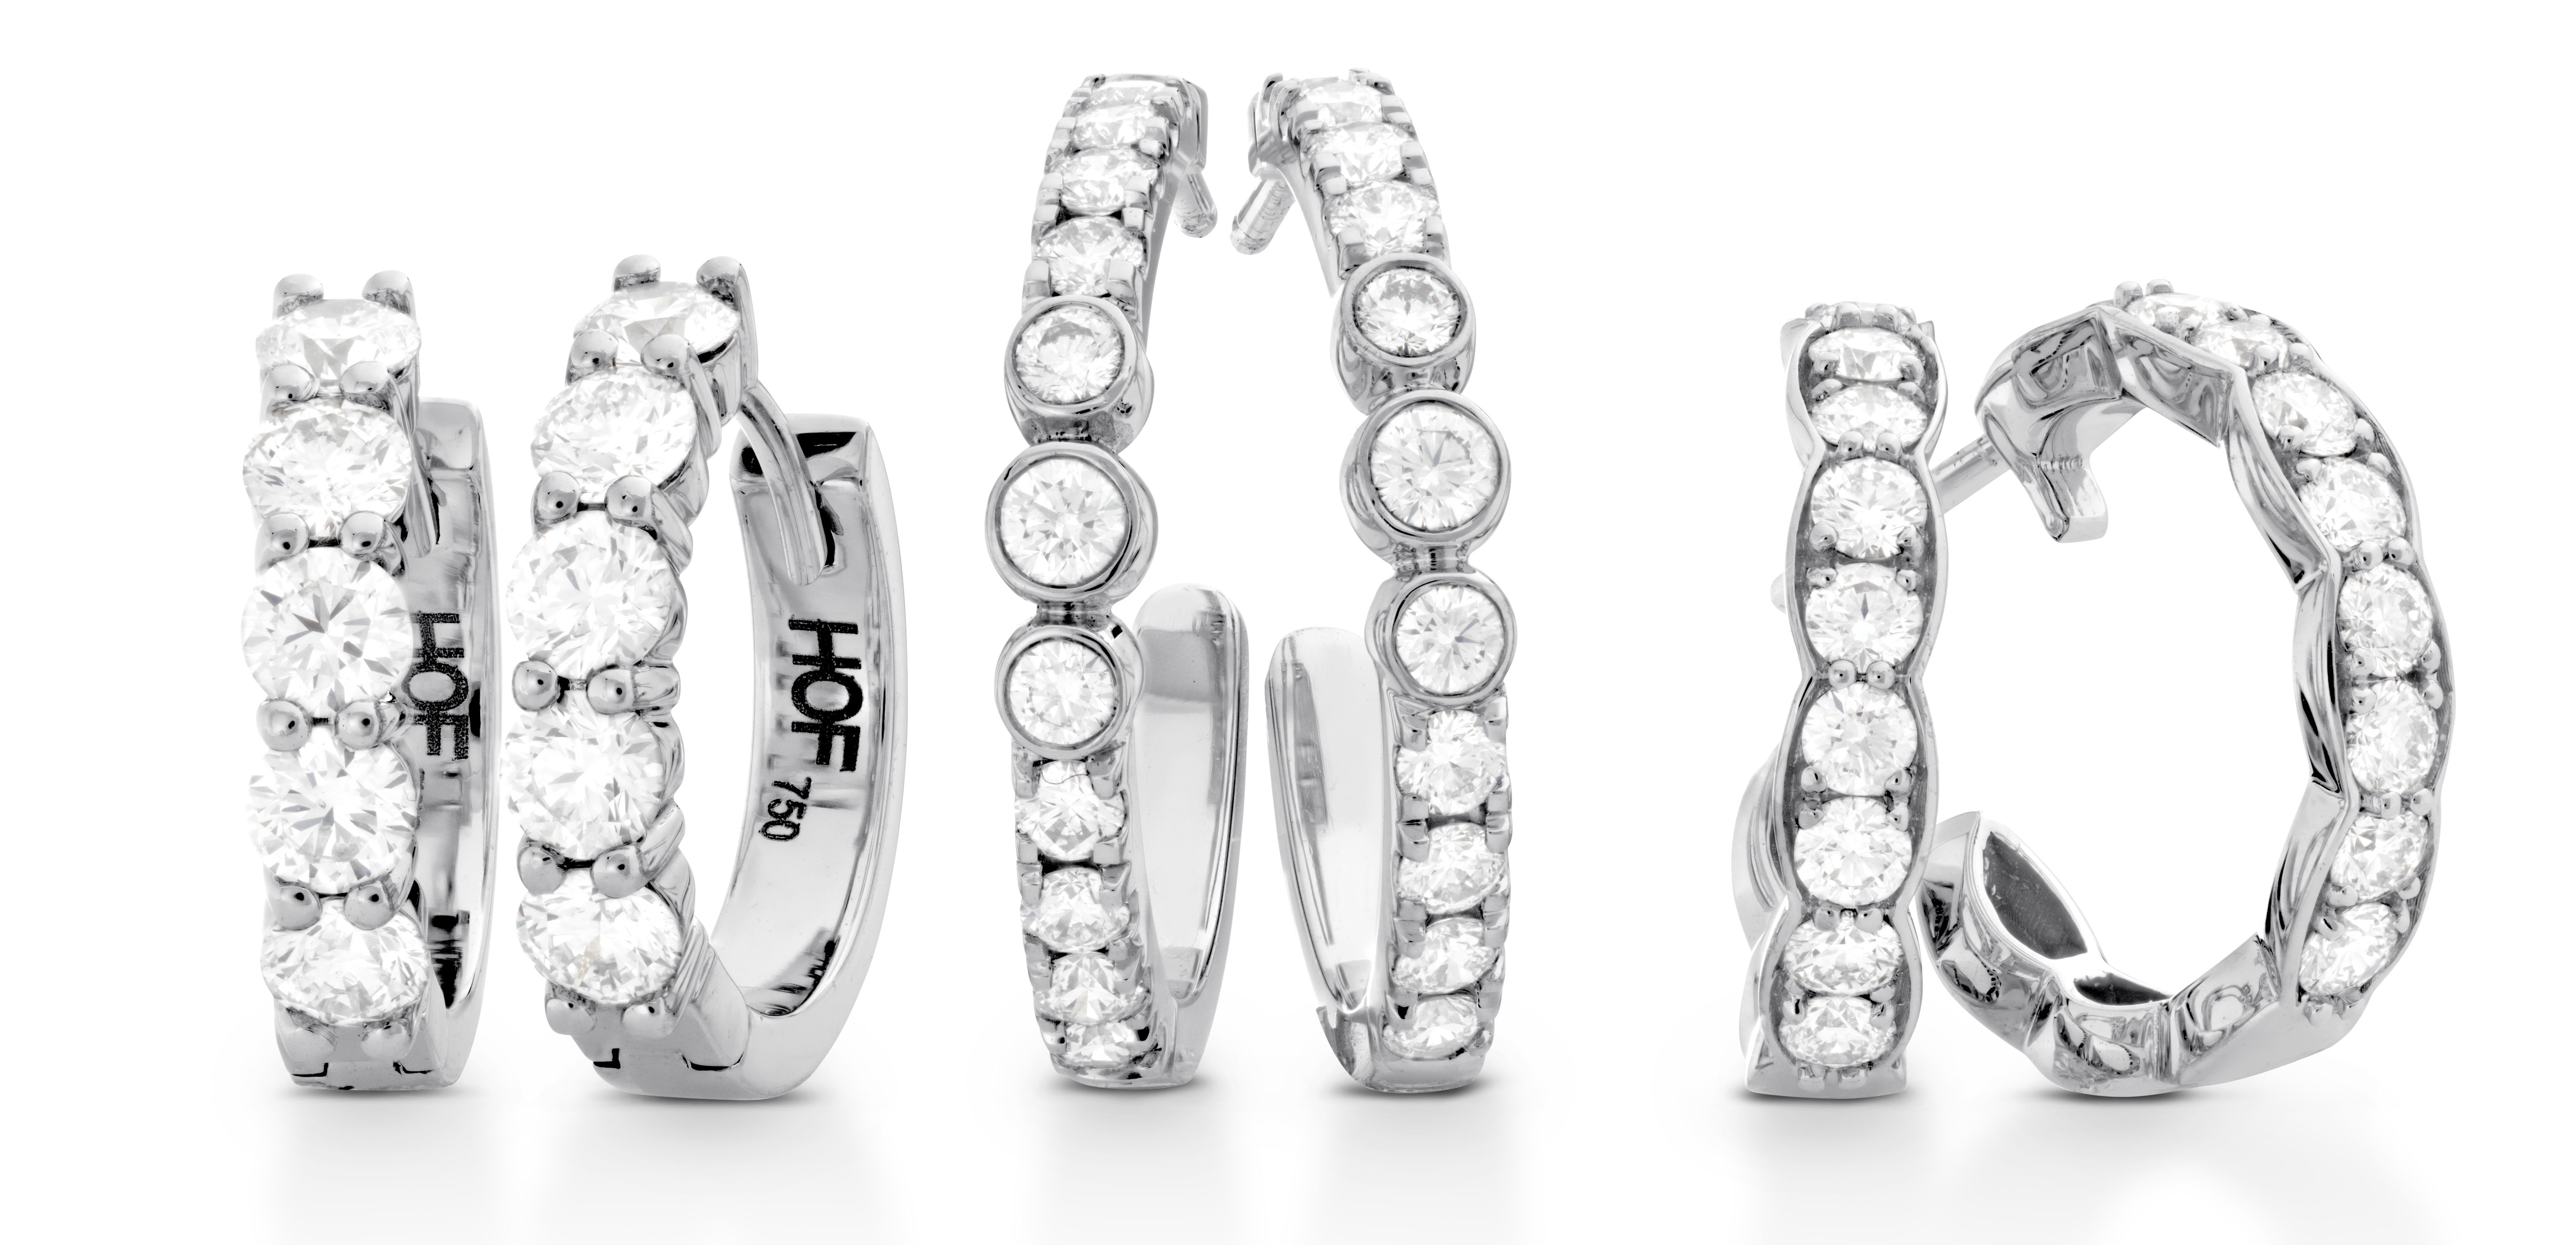 Hoop Earrings While Diamond Studs Are Synonymous With Timeless Clic Style Perfect For Those Looking To Make A Truly Dazzling